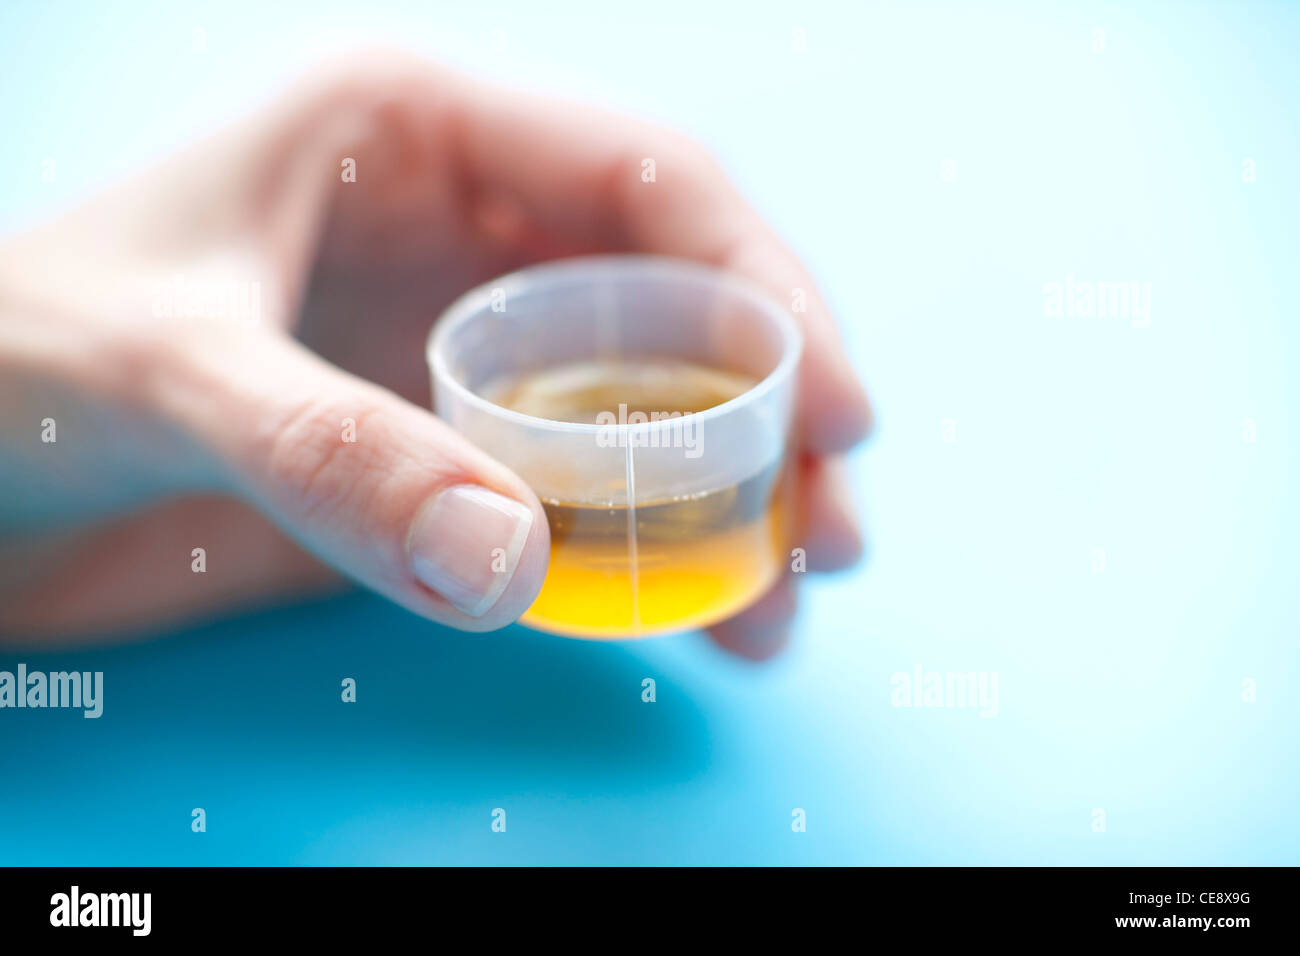 MODEL RELEASED. Dose of medicine. - Stock Image